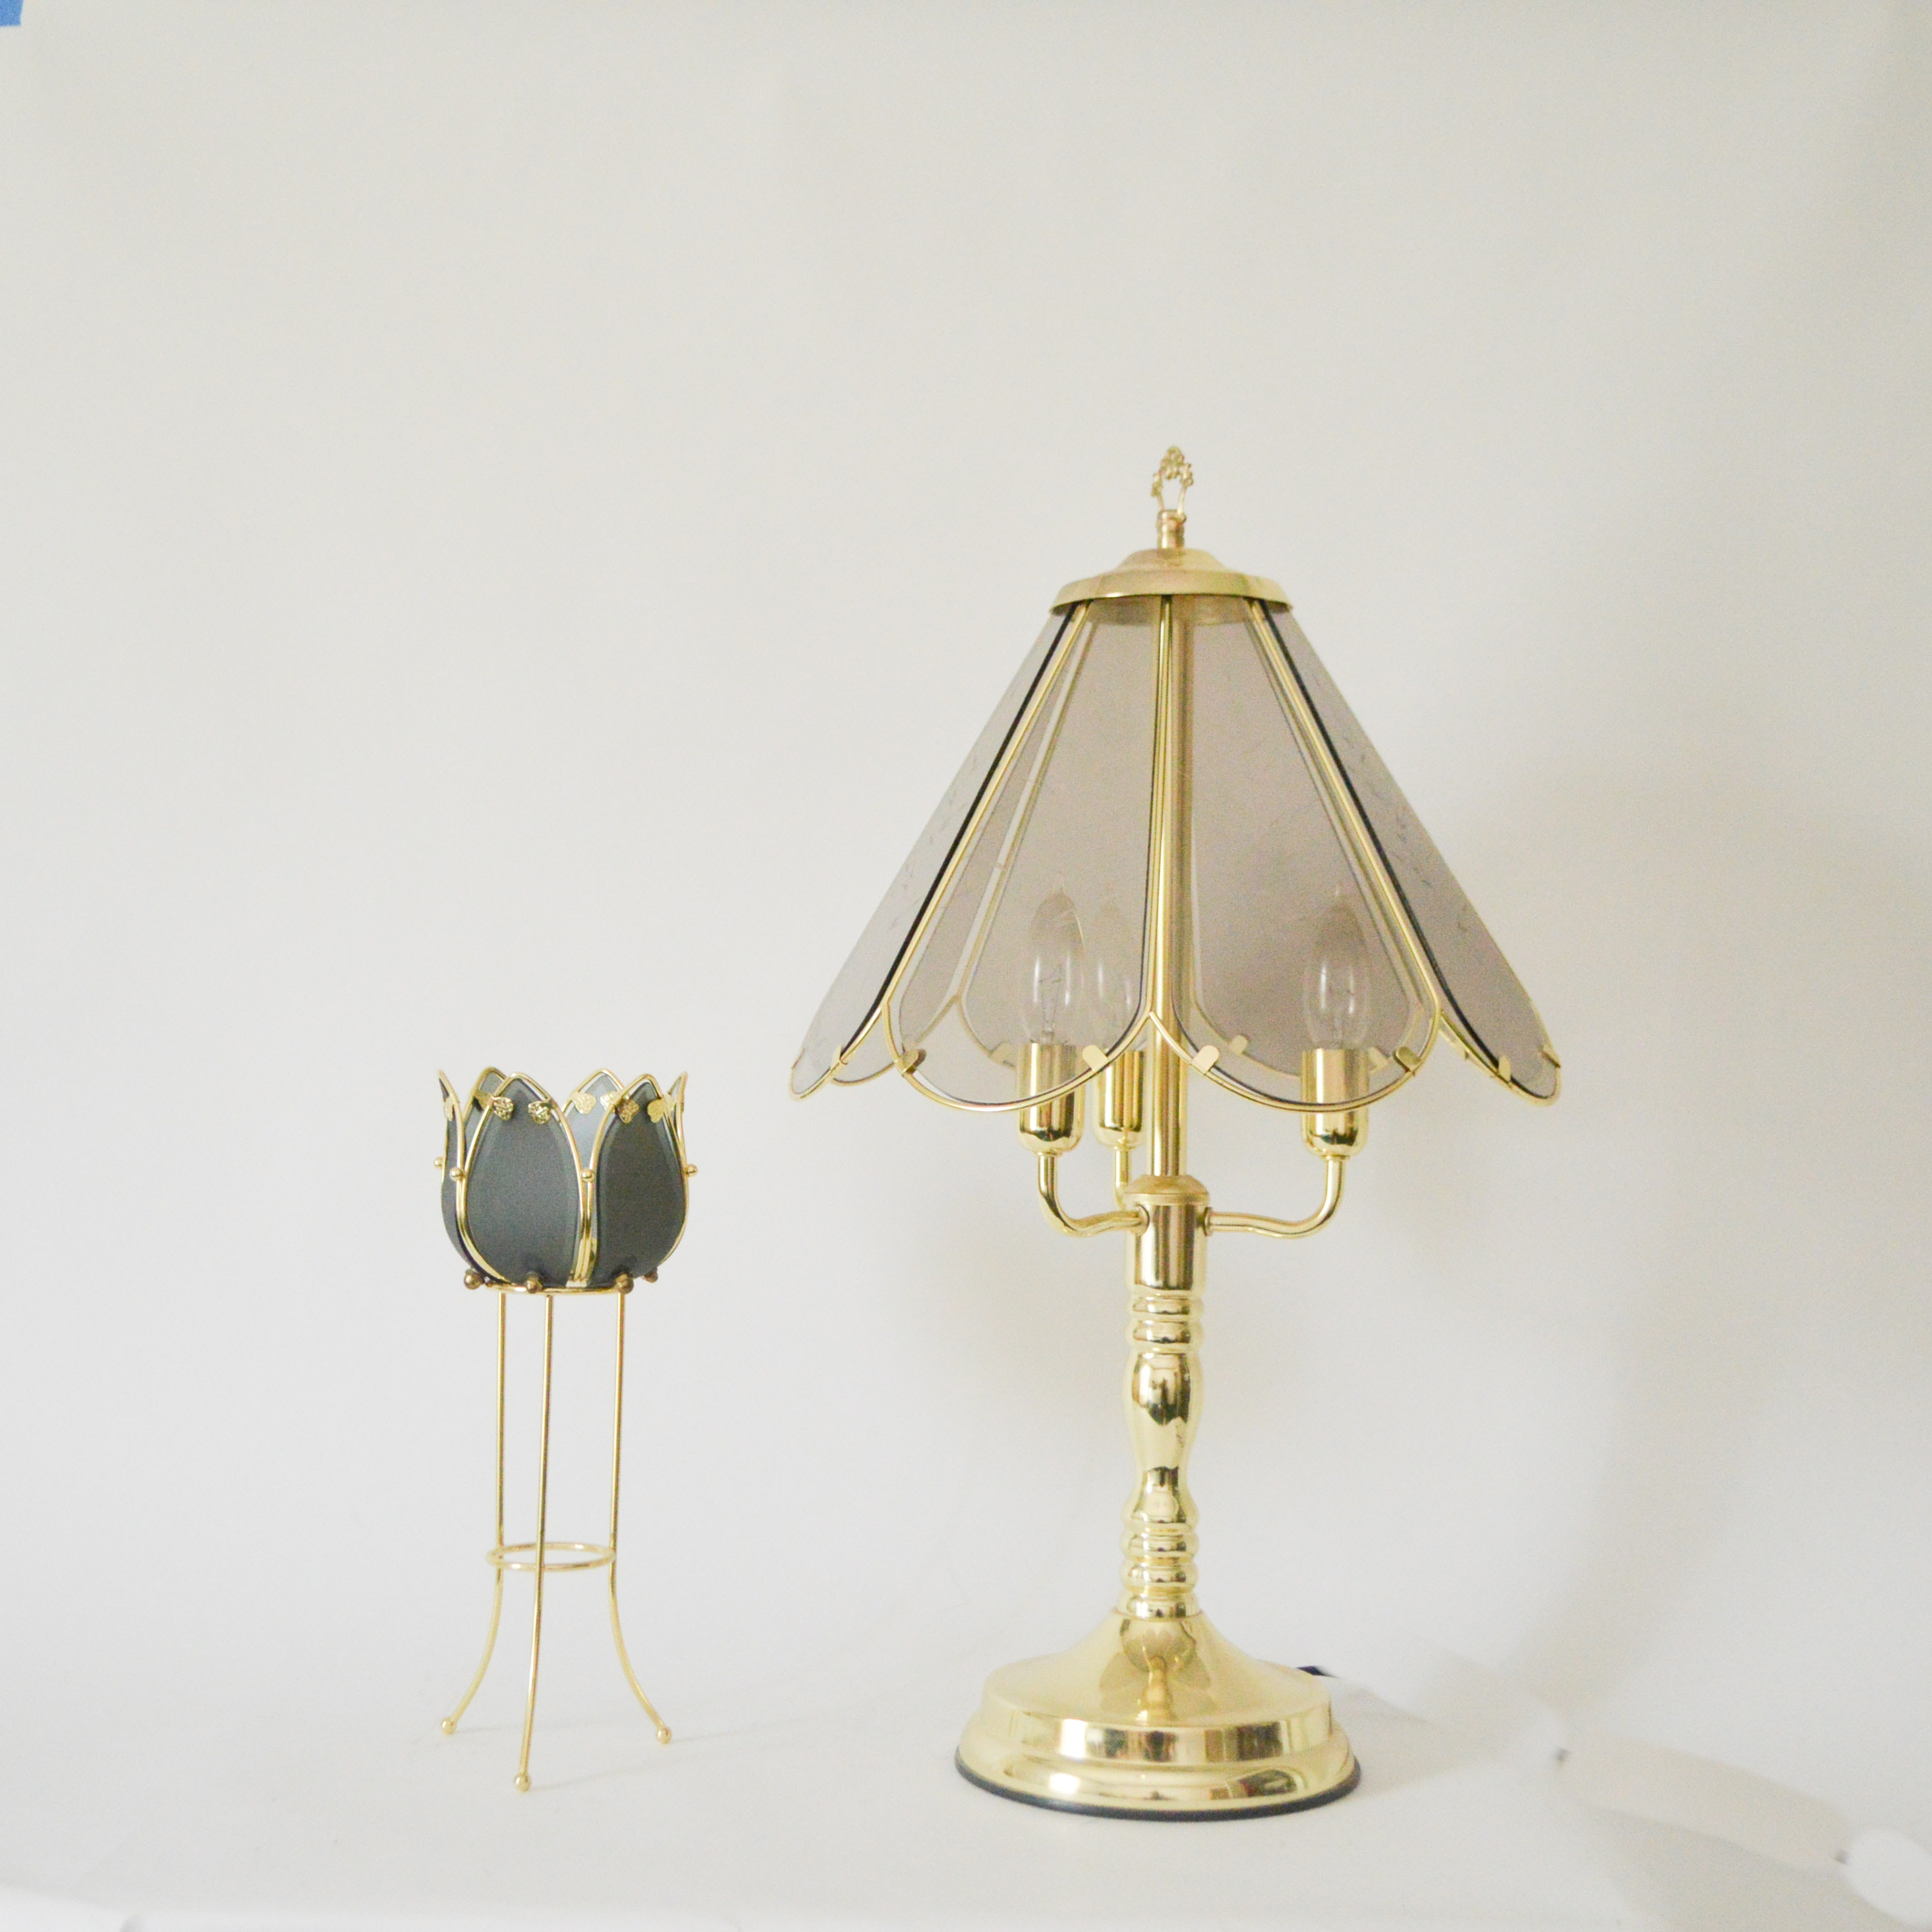 Glass and Brass Touch Table Lamp and Candle Holder